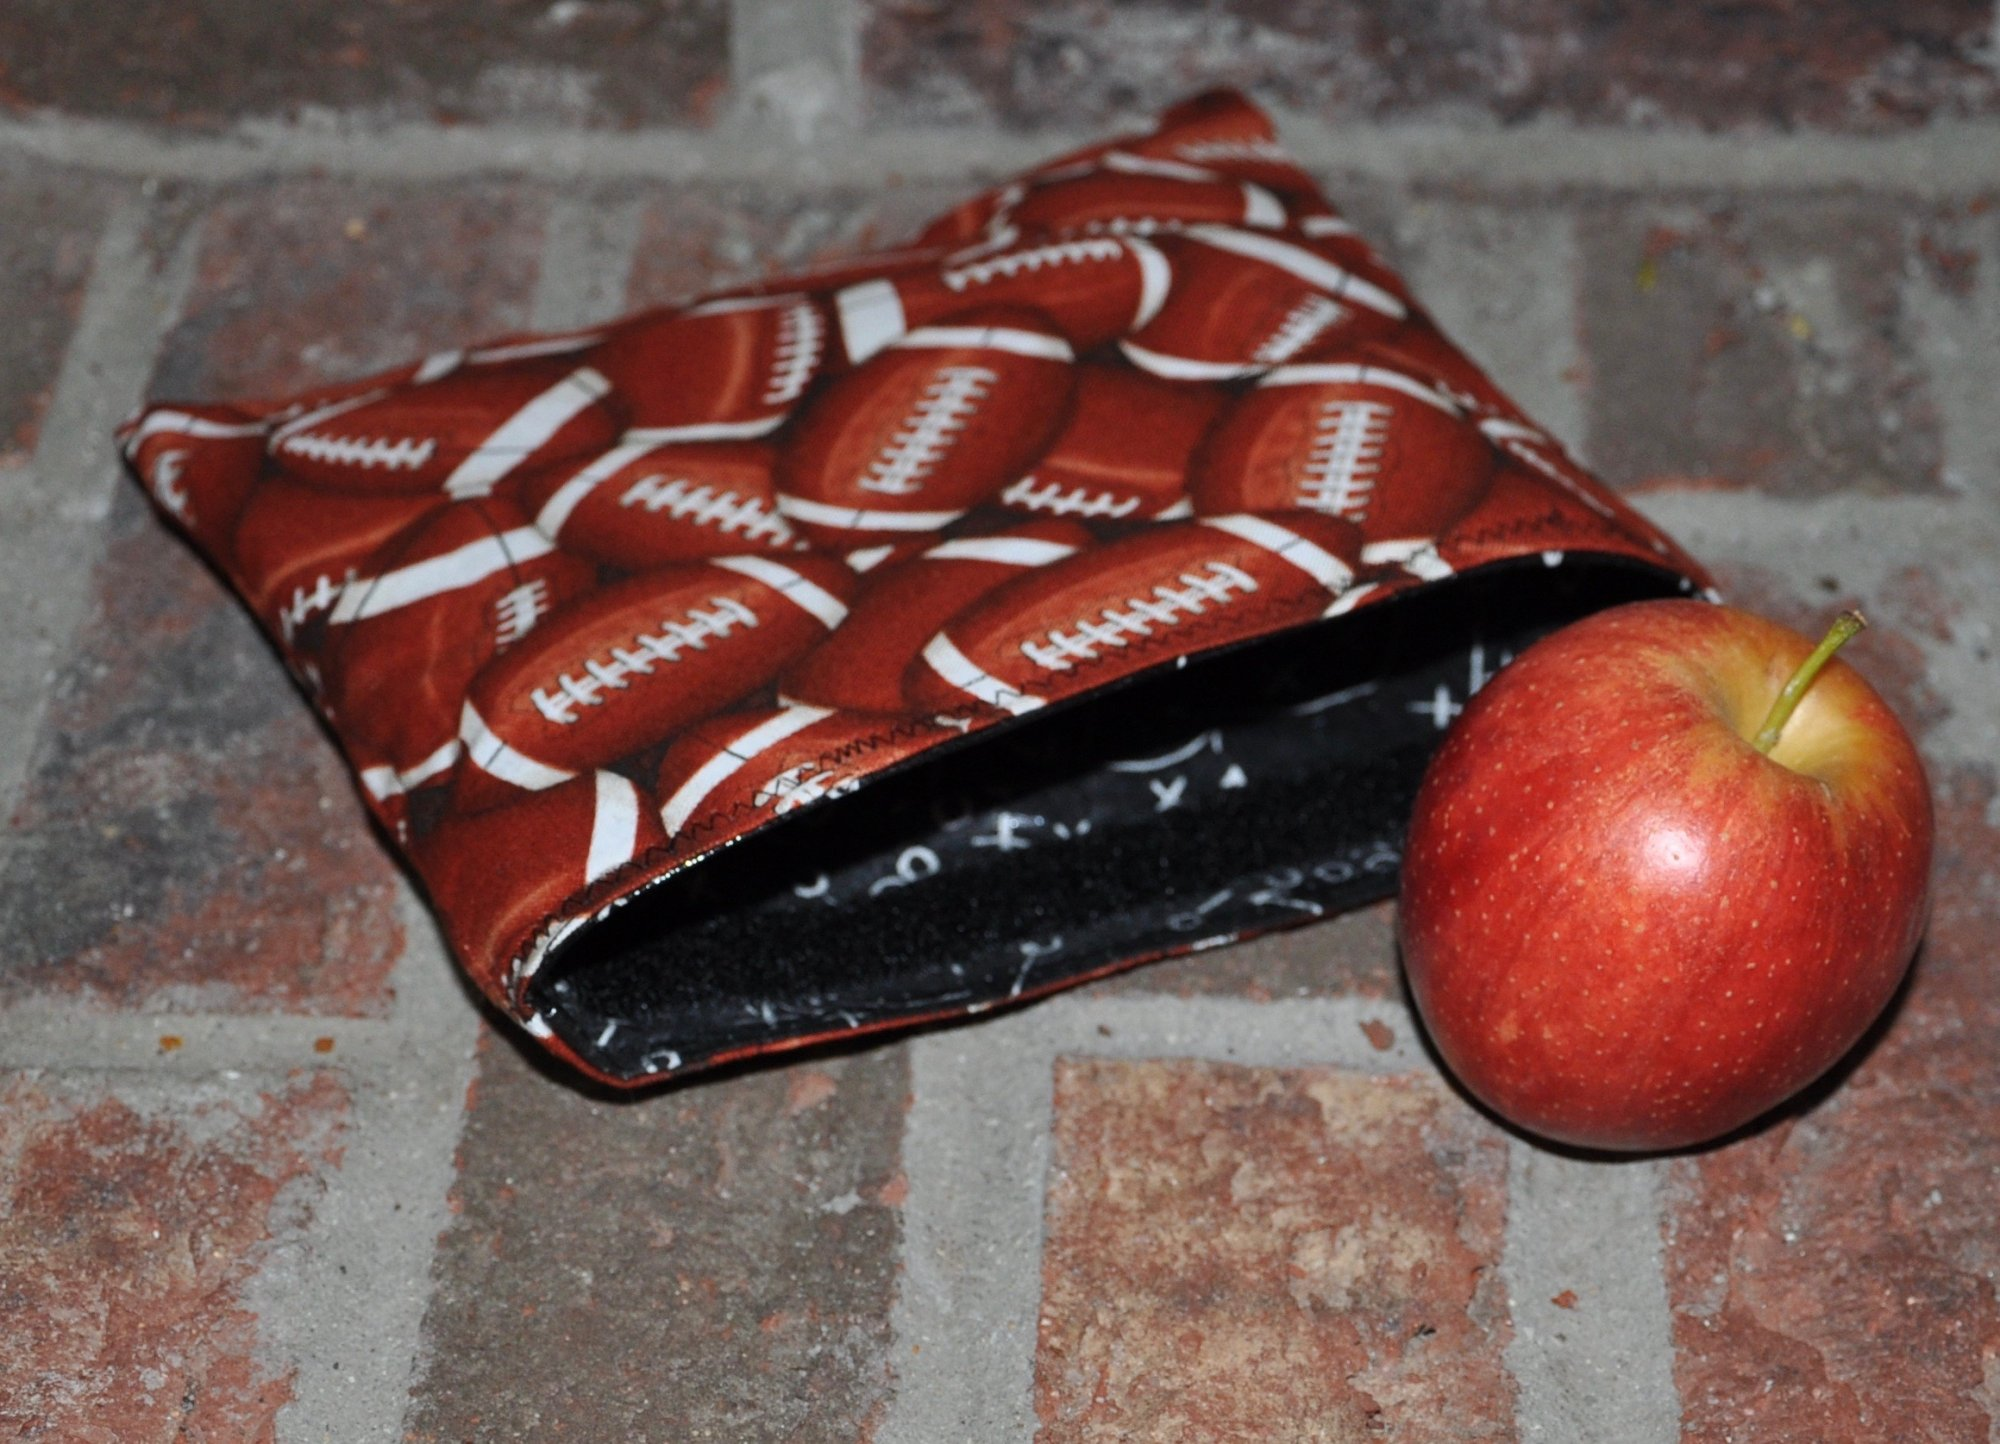 Football Reusable Snack Bag Kit